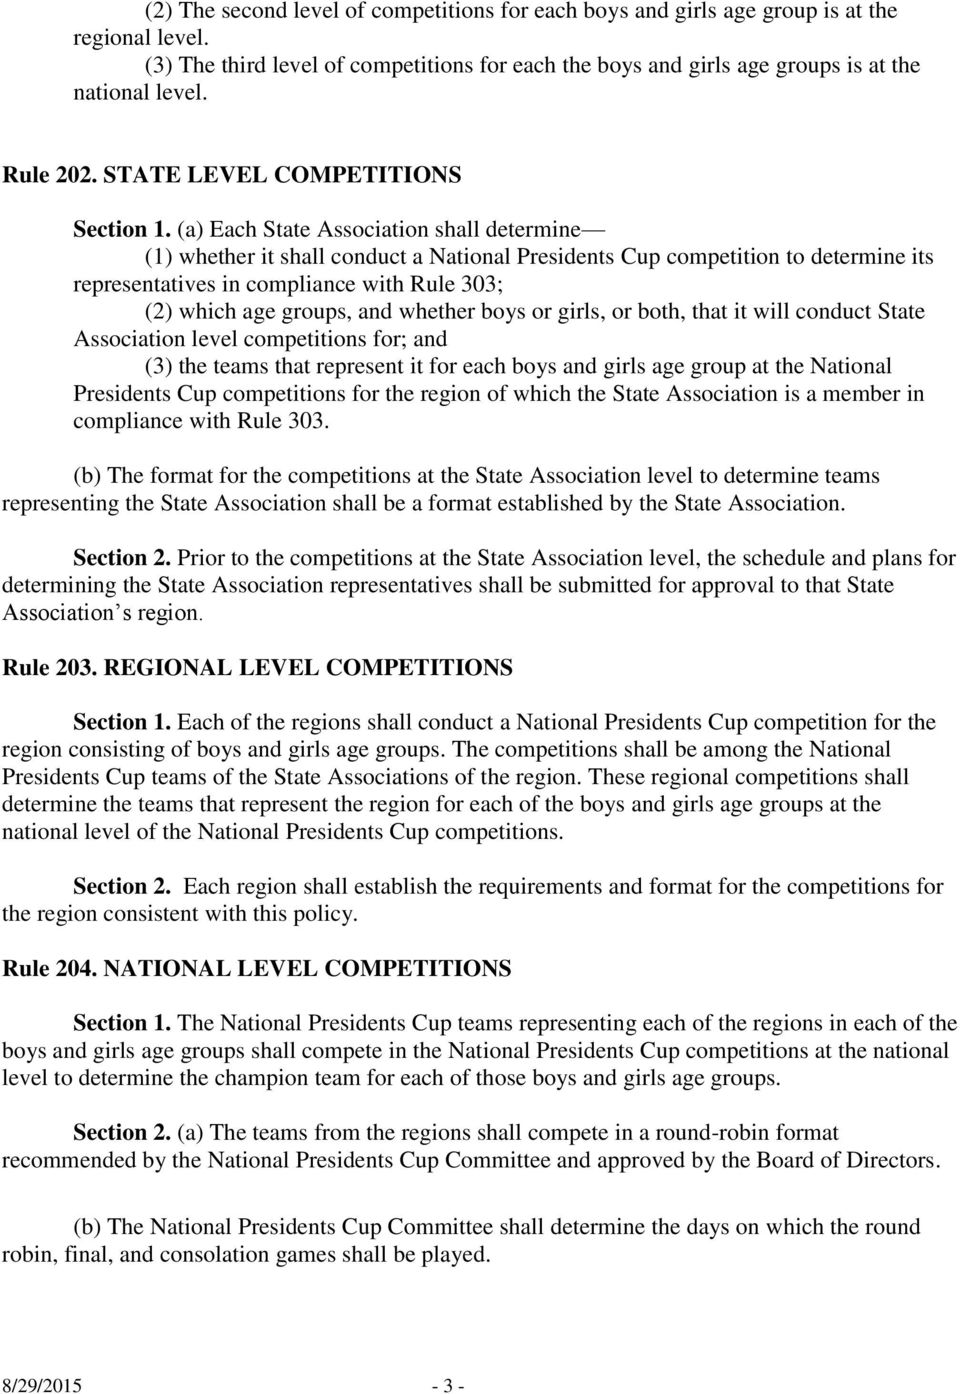 (a) Each State Association shall determine (1) whether it shall conduct a National Presidents Cup competition to determine its representatives in compliance with Rule 303; (2) which age groups, and